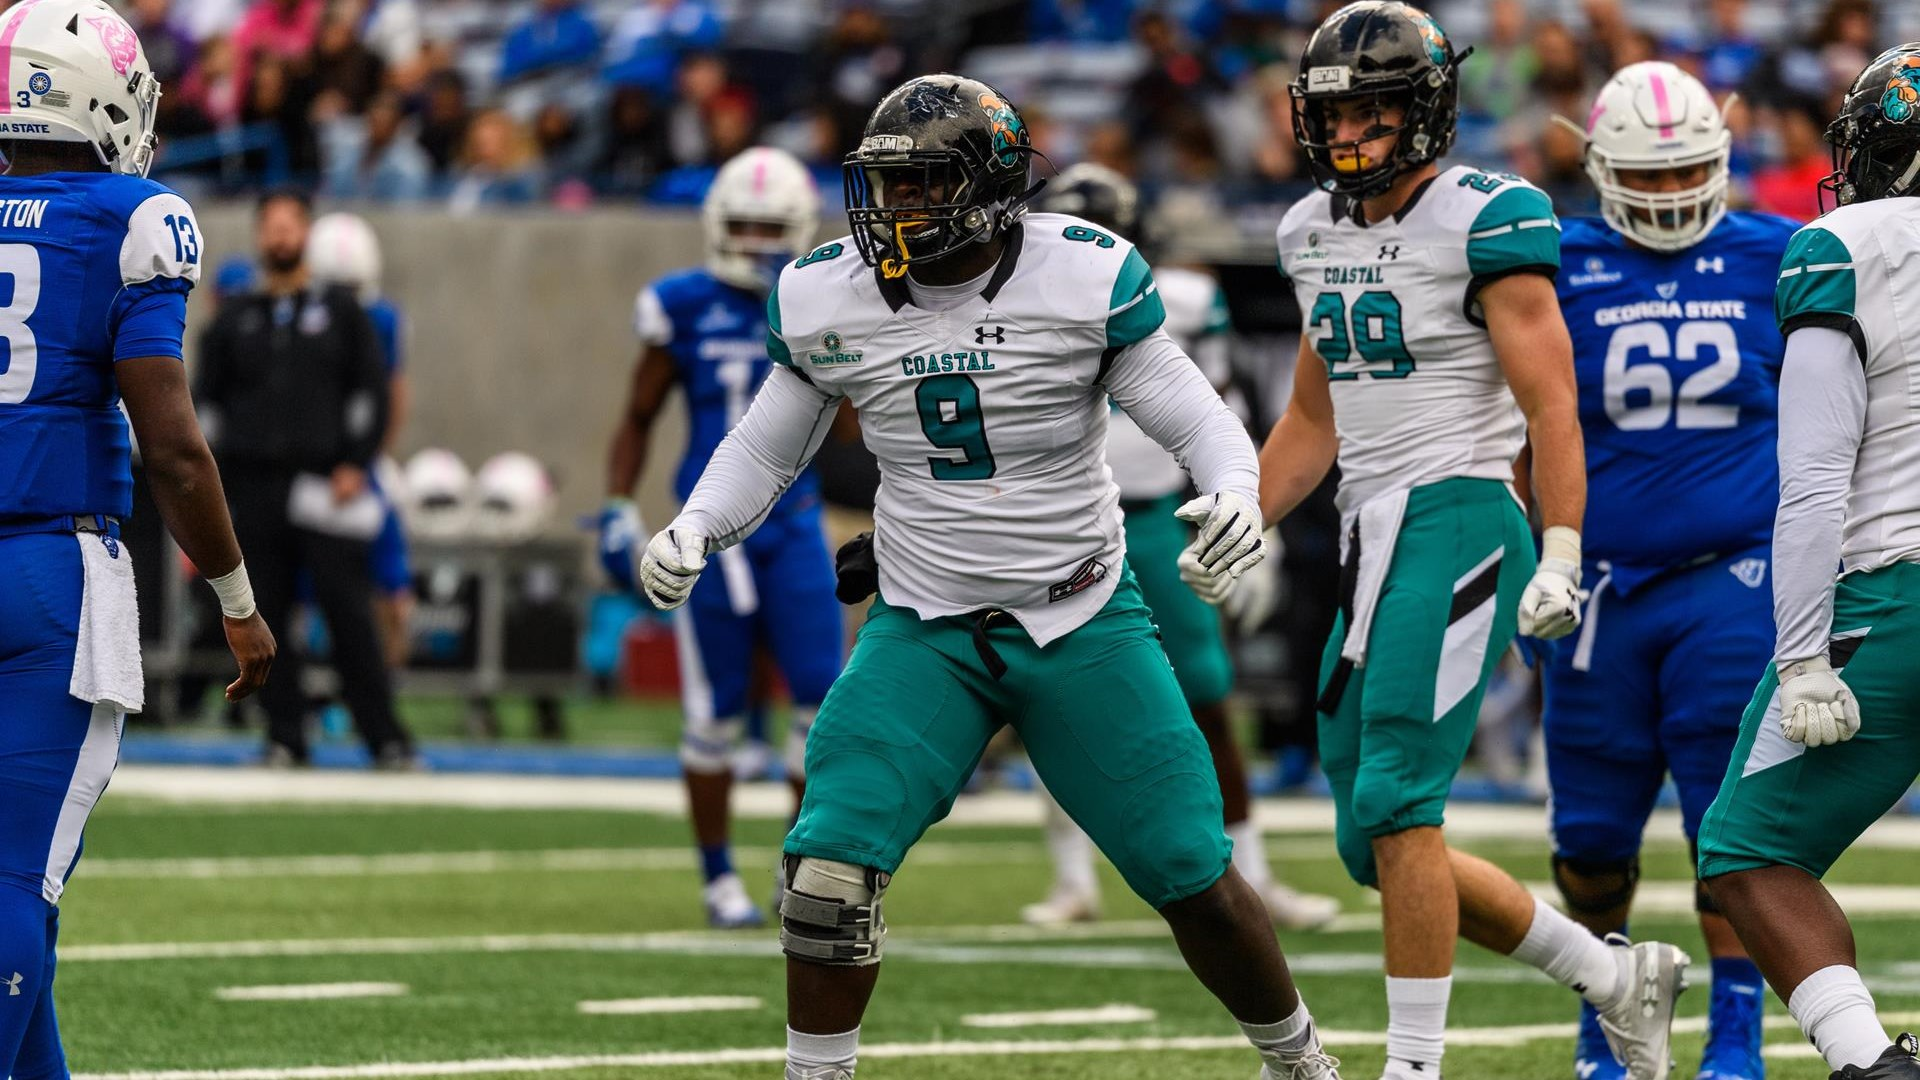 2019 Ncaa Division I College Football Team Previews Coastal Carolina Chanticleers The College Sports Journal